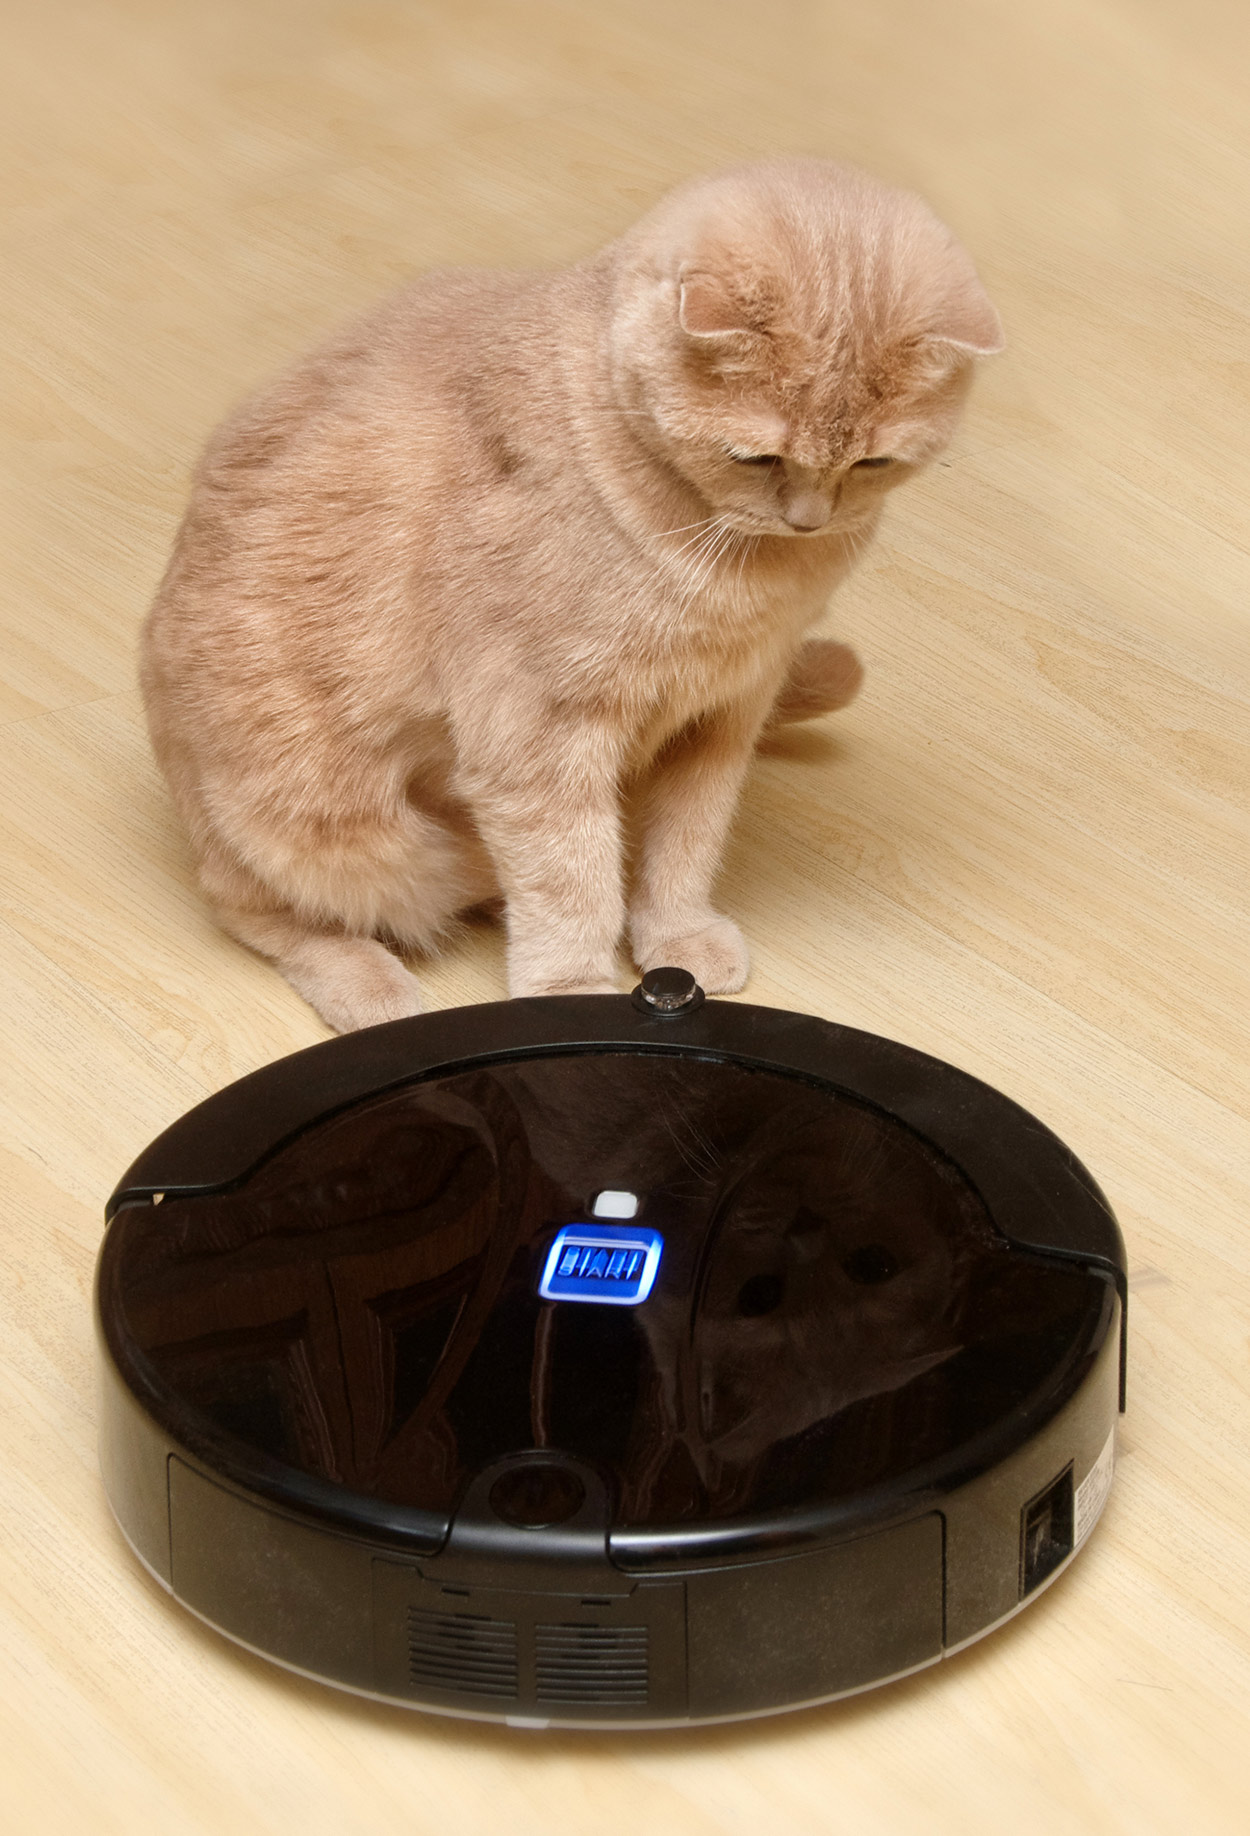 Best Vacuum Cleaner For Dog And Cat Hair